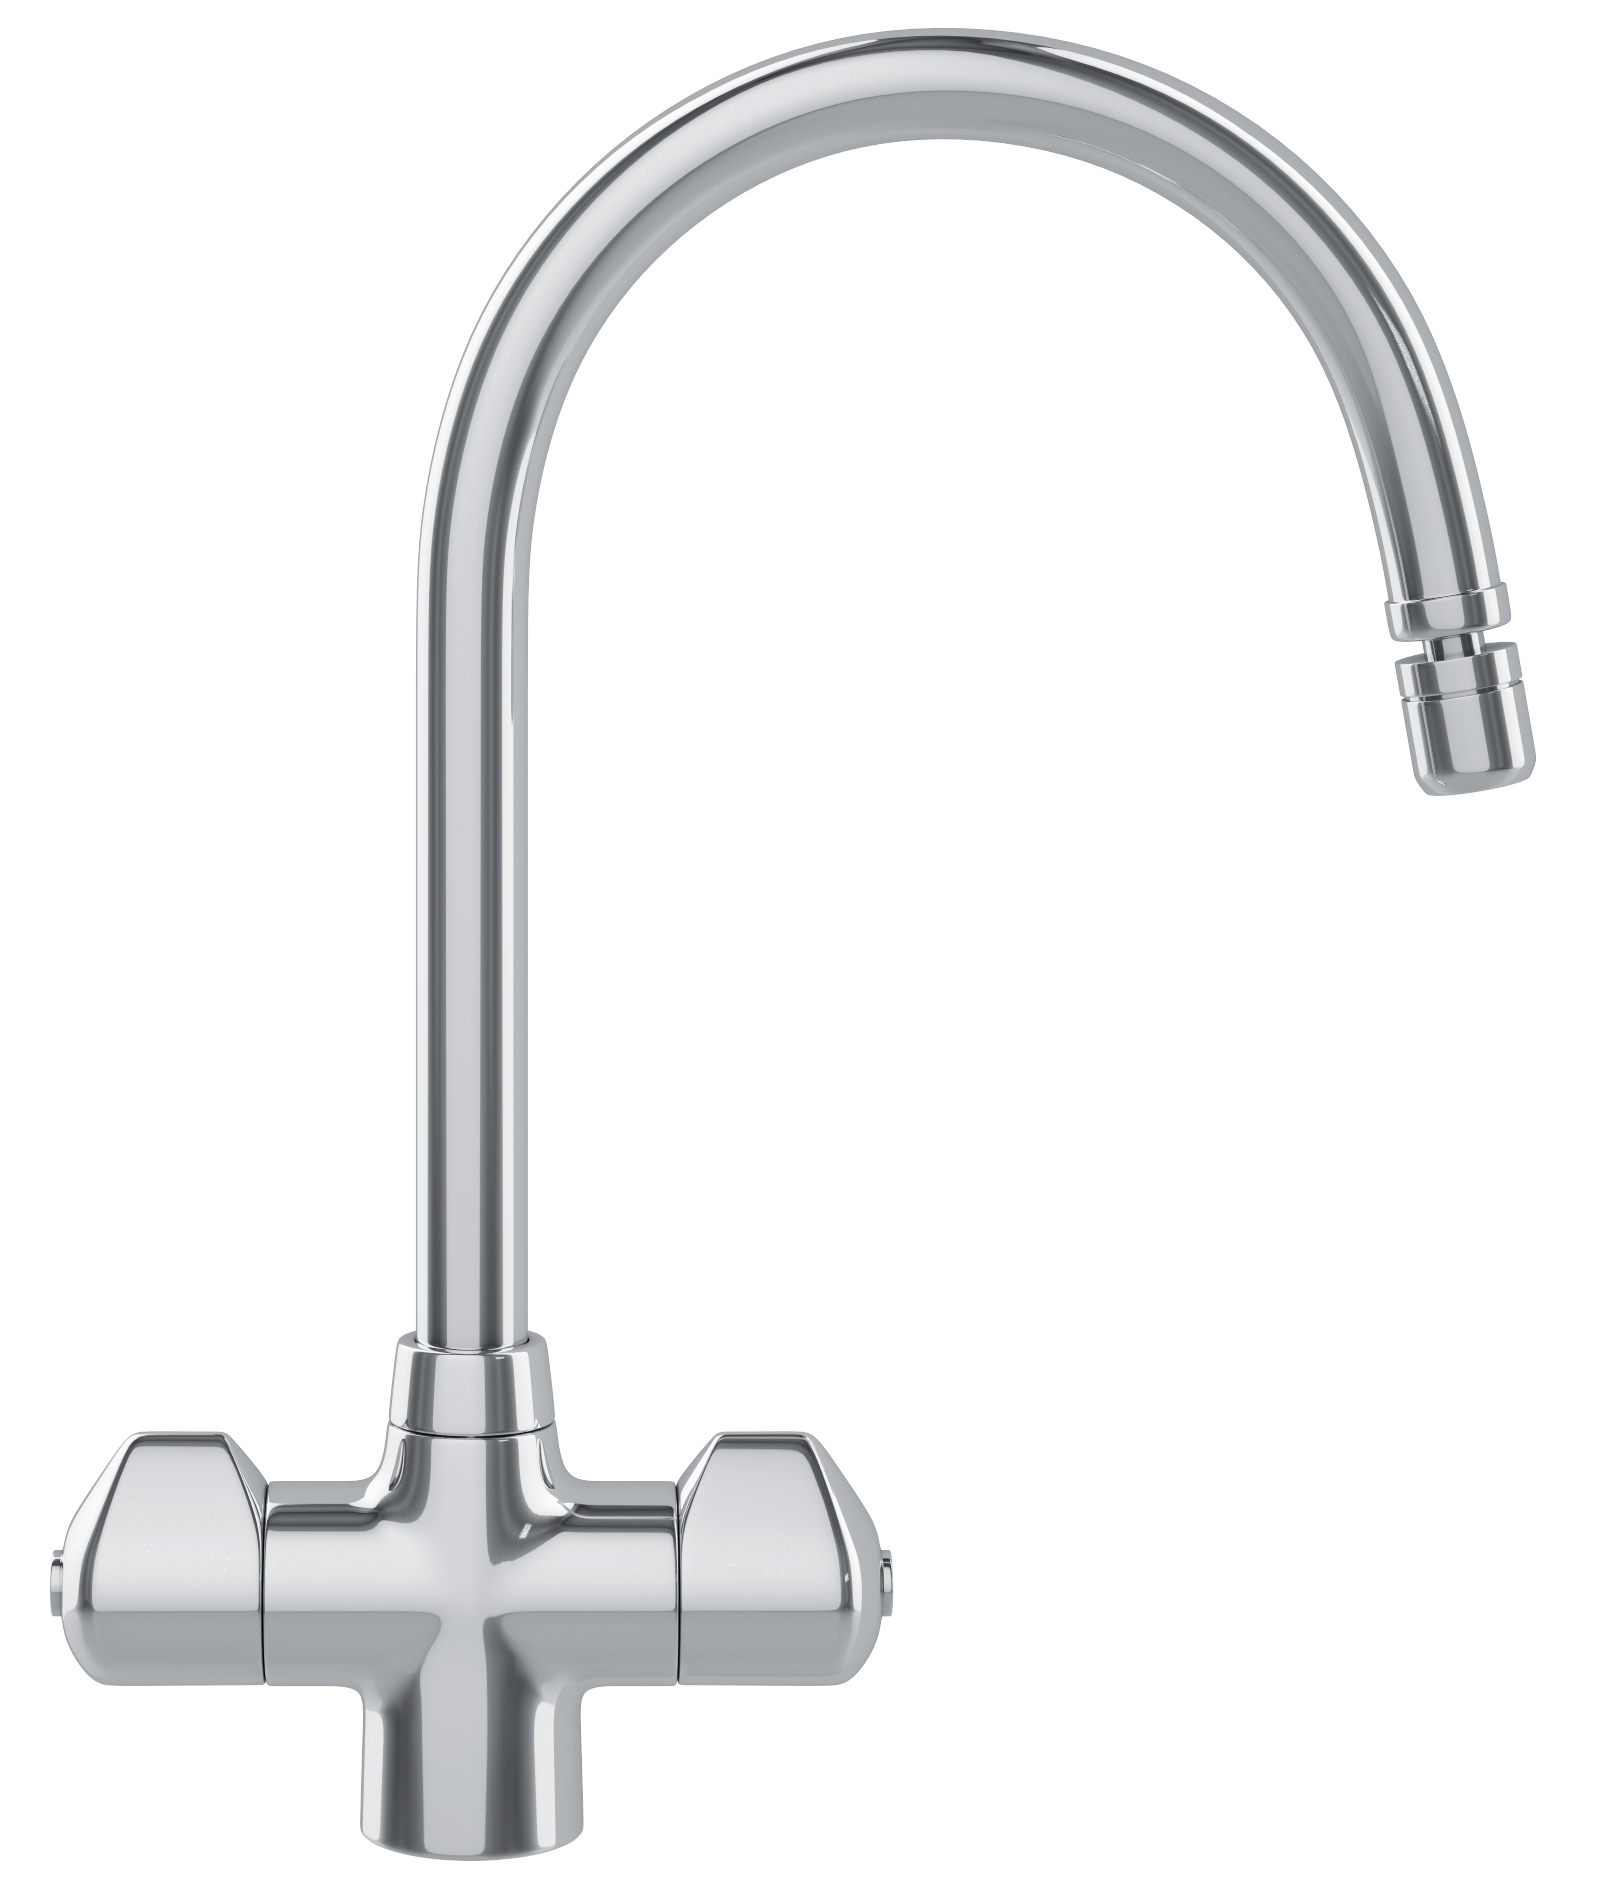 Sink Mixer Taps Franke Moselle Kitchen Sink Mixer Tap Chrome More Finish